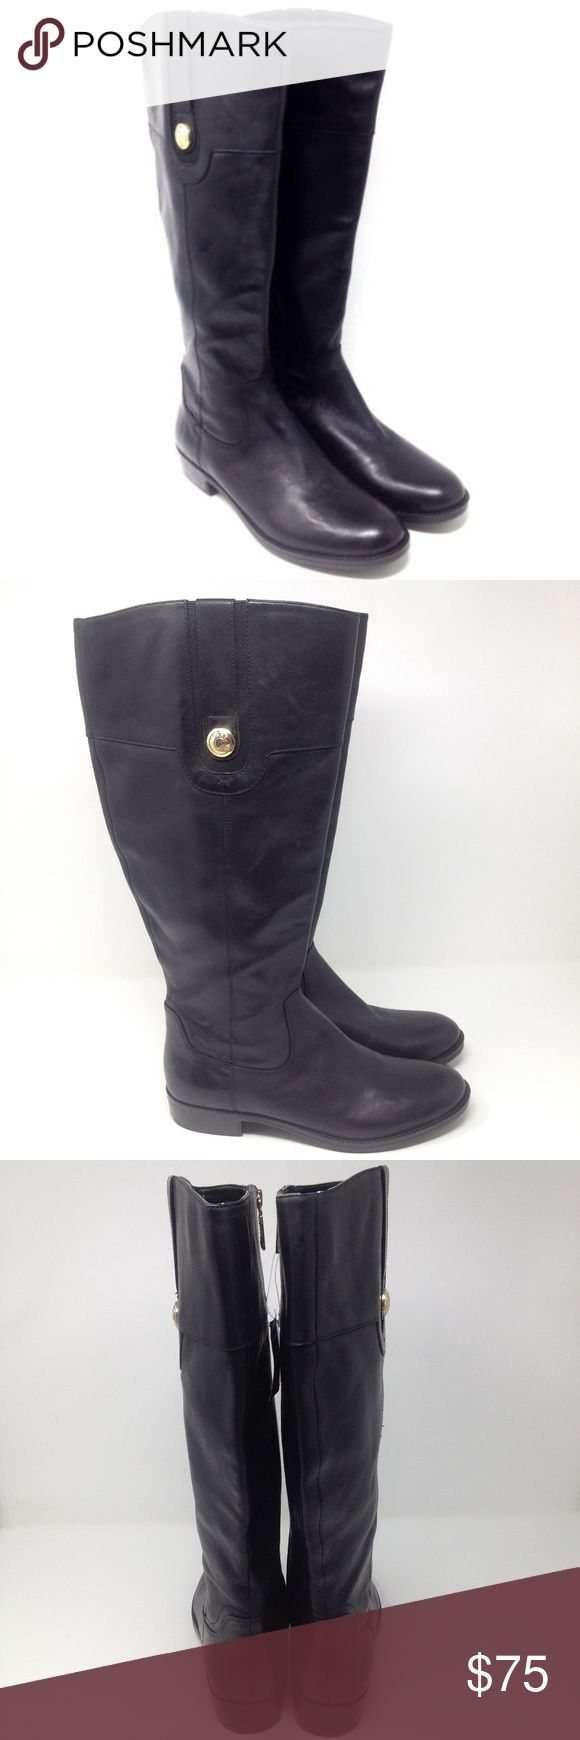 """Tommy Hilfiger Black Leather Knee Ridding Boots Tommy Hilfiger Women's Boots Black Leather Knee High Riding Zip Up Shoes  Type: Boots Style: Riding / Equestrian / Zip Up / Knee High Model: TWDALYN-WC Brand: Tommy Hilfiger Size: 8.5 Heel Height: 1"""" Material: Leather & Textile Upper / Balance Man Made Color: Black w/ Gold Hardware & Emblem Condition: New with Tags - No Box Country of Manufacturer: China Tommy Hilfiger Shoes Over the Knee Boots"""